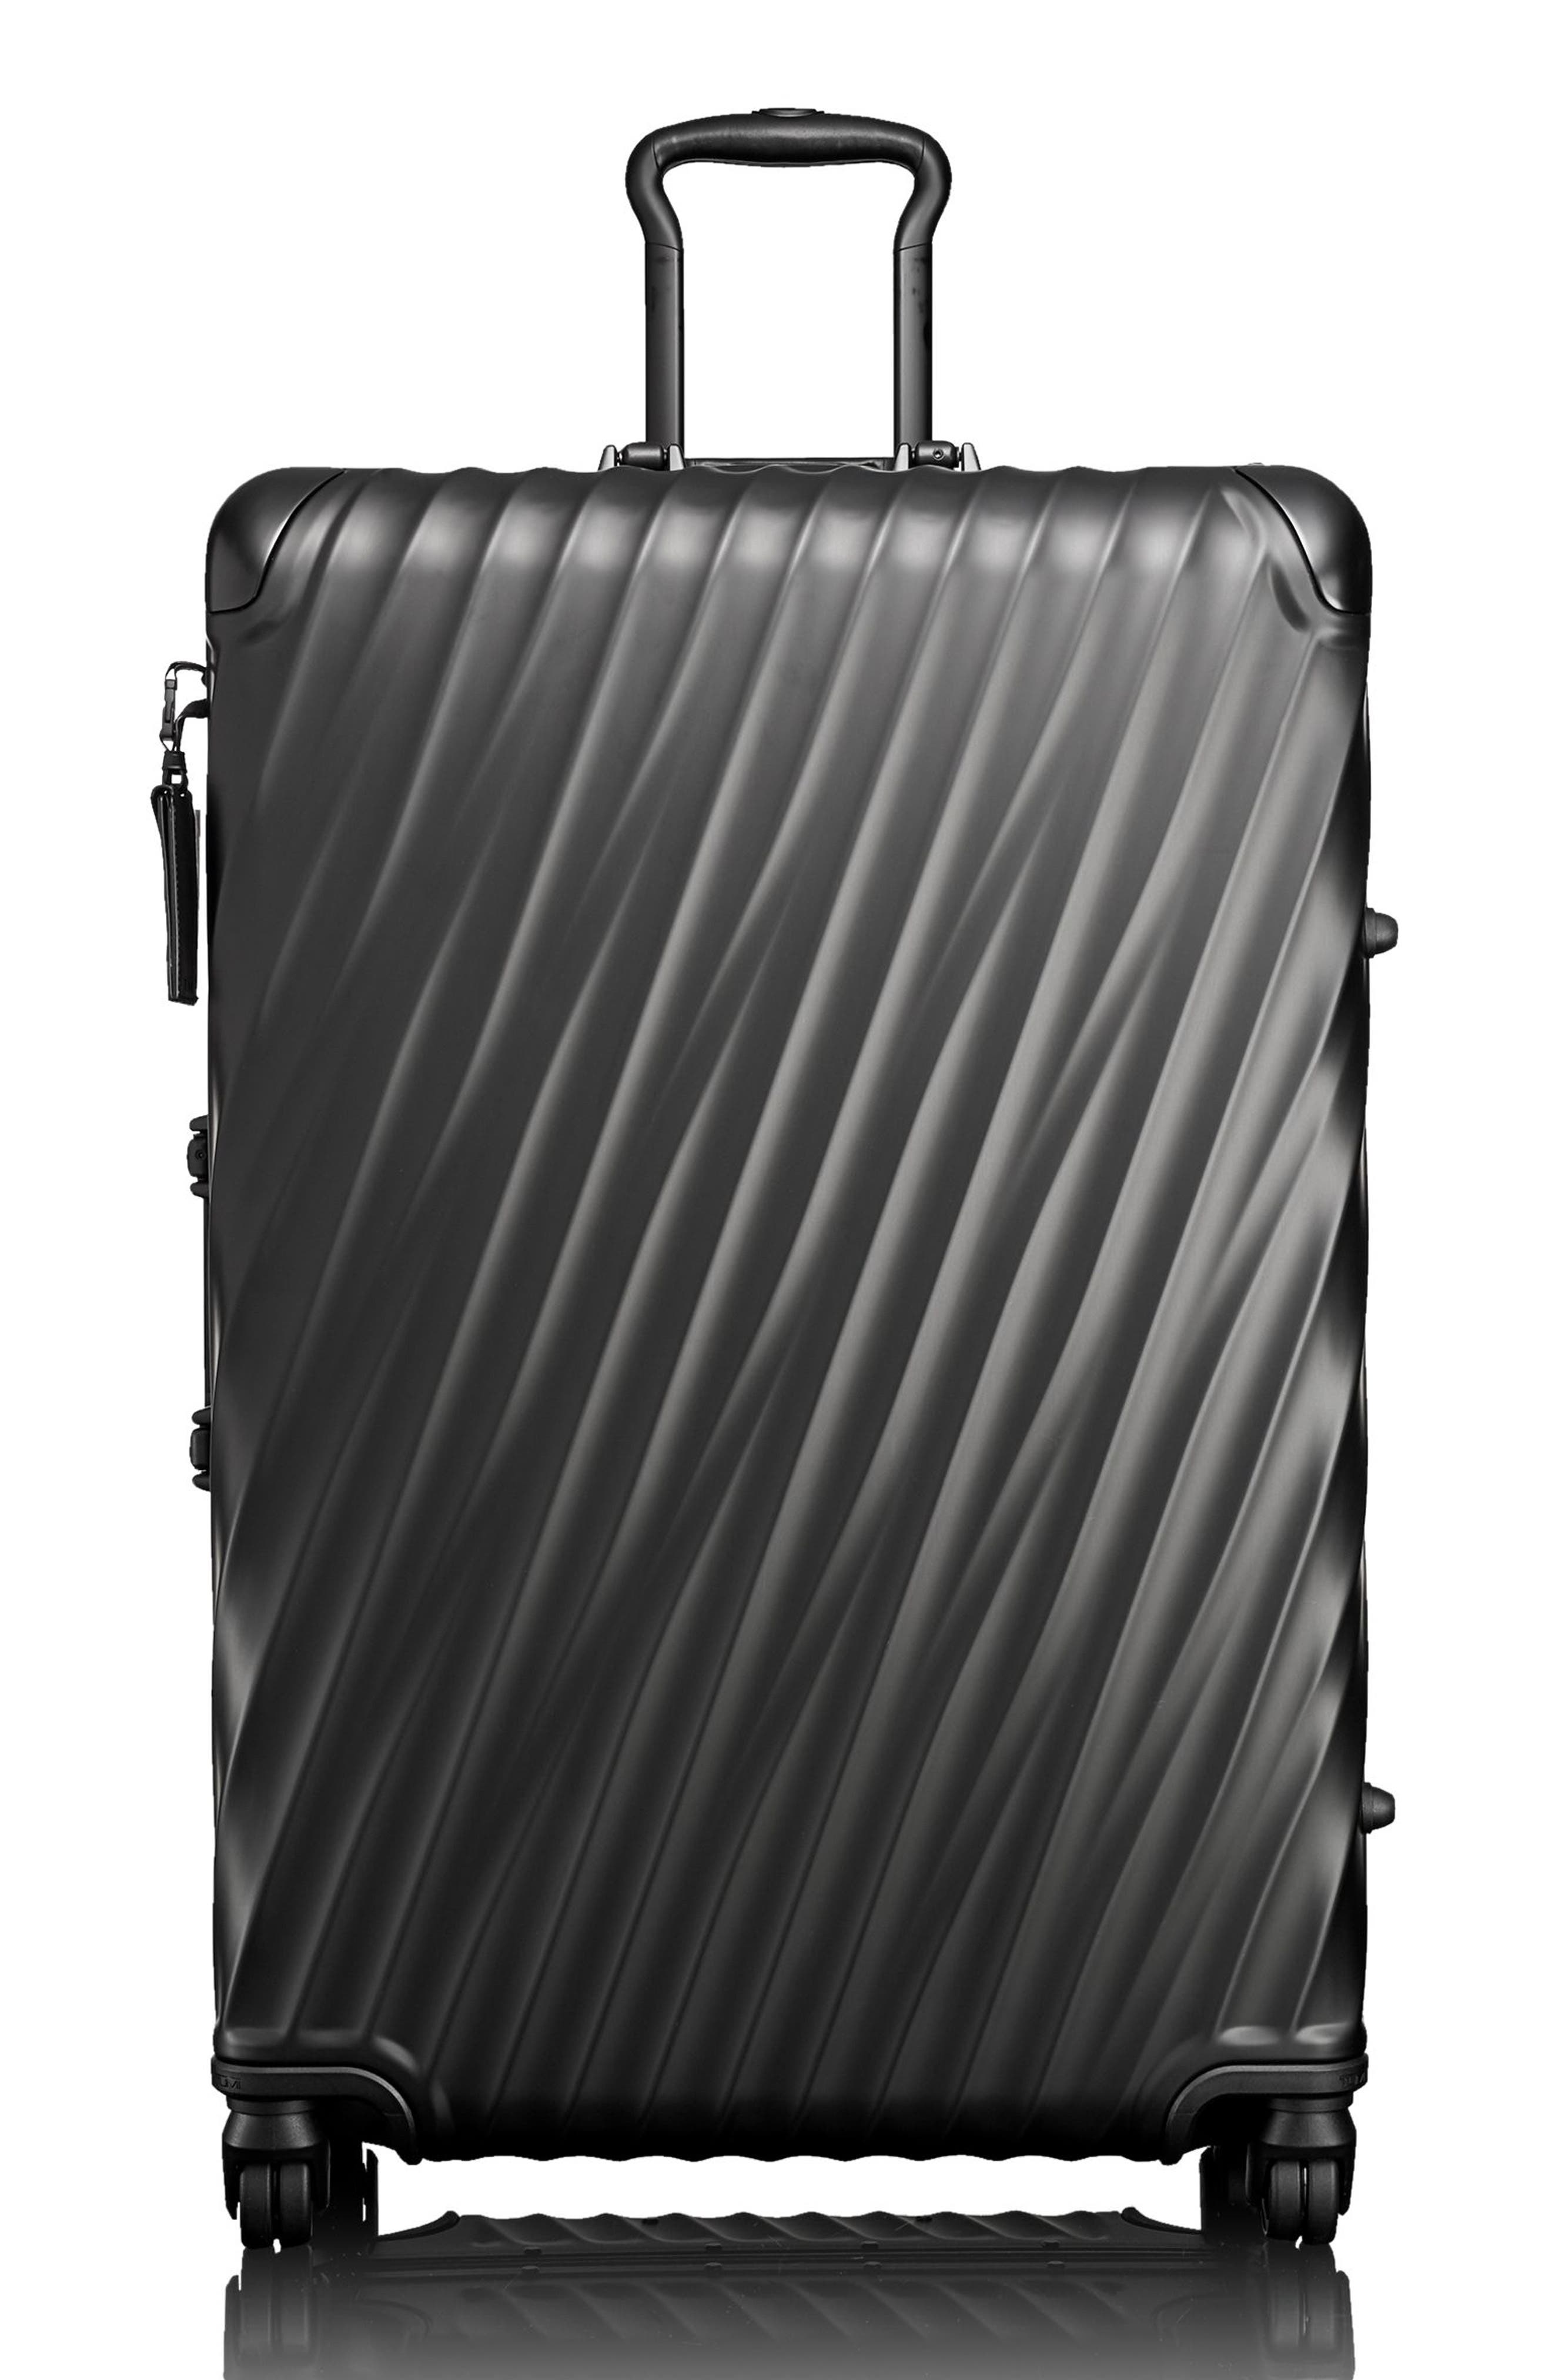 19 Degree 31-Inch Extended Trip Wheeled Aluminum Packing Case,                             Main thumbnail 1, color,                             MATTE BLACK